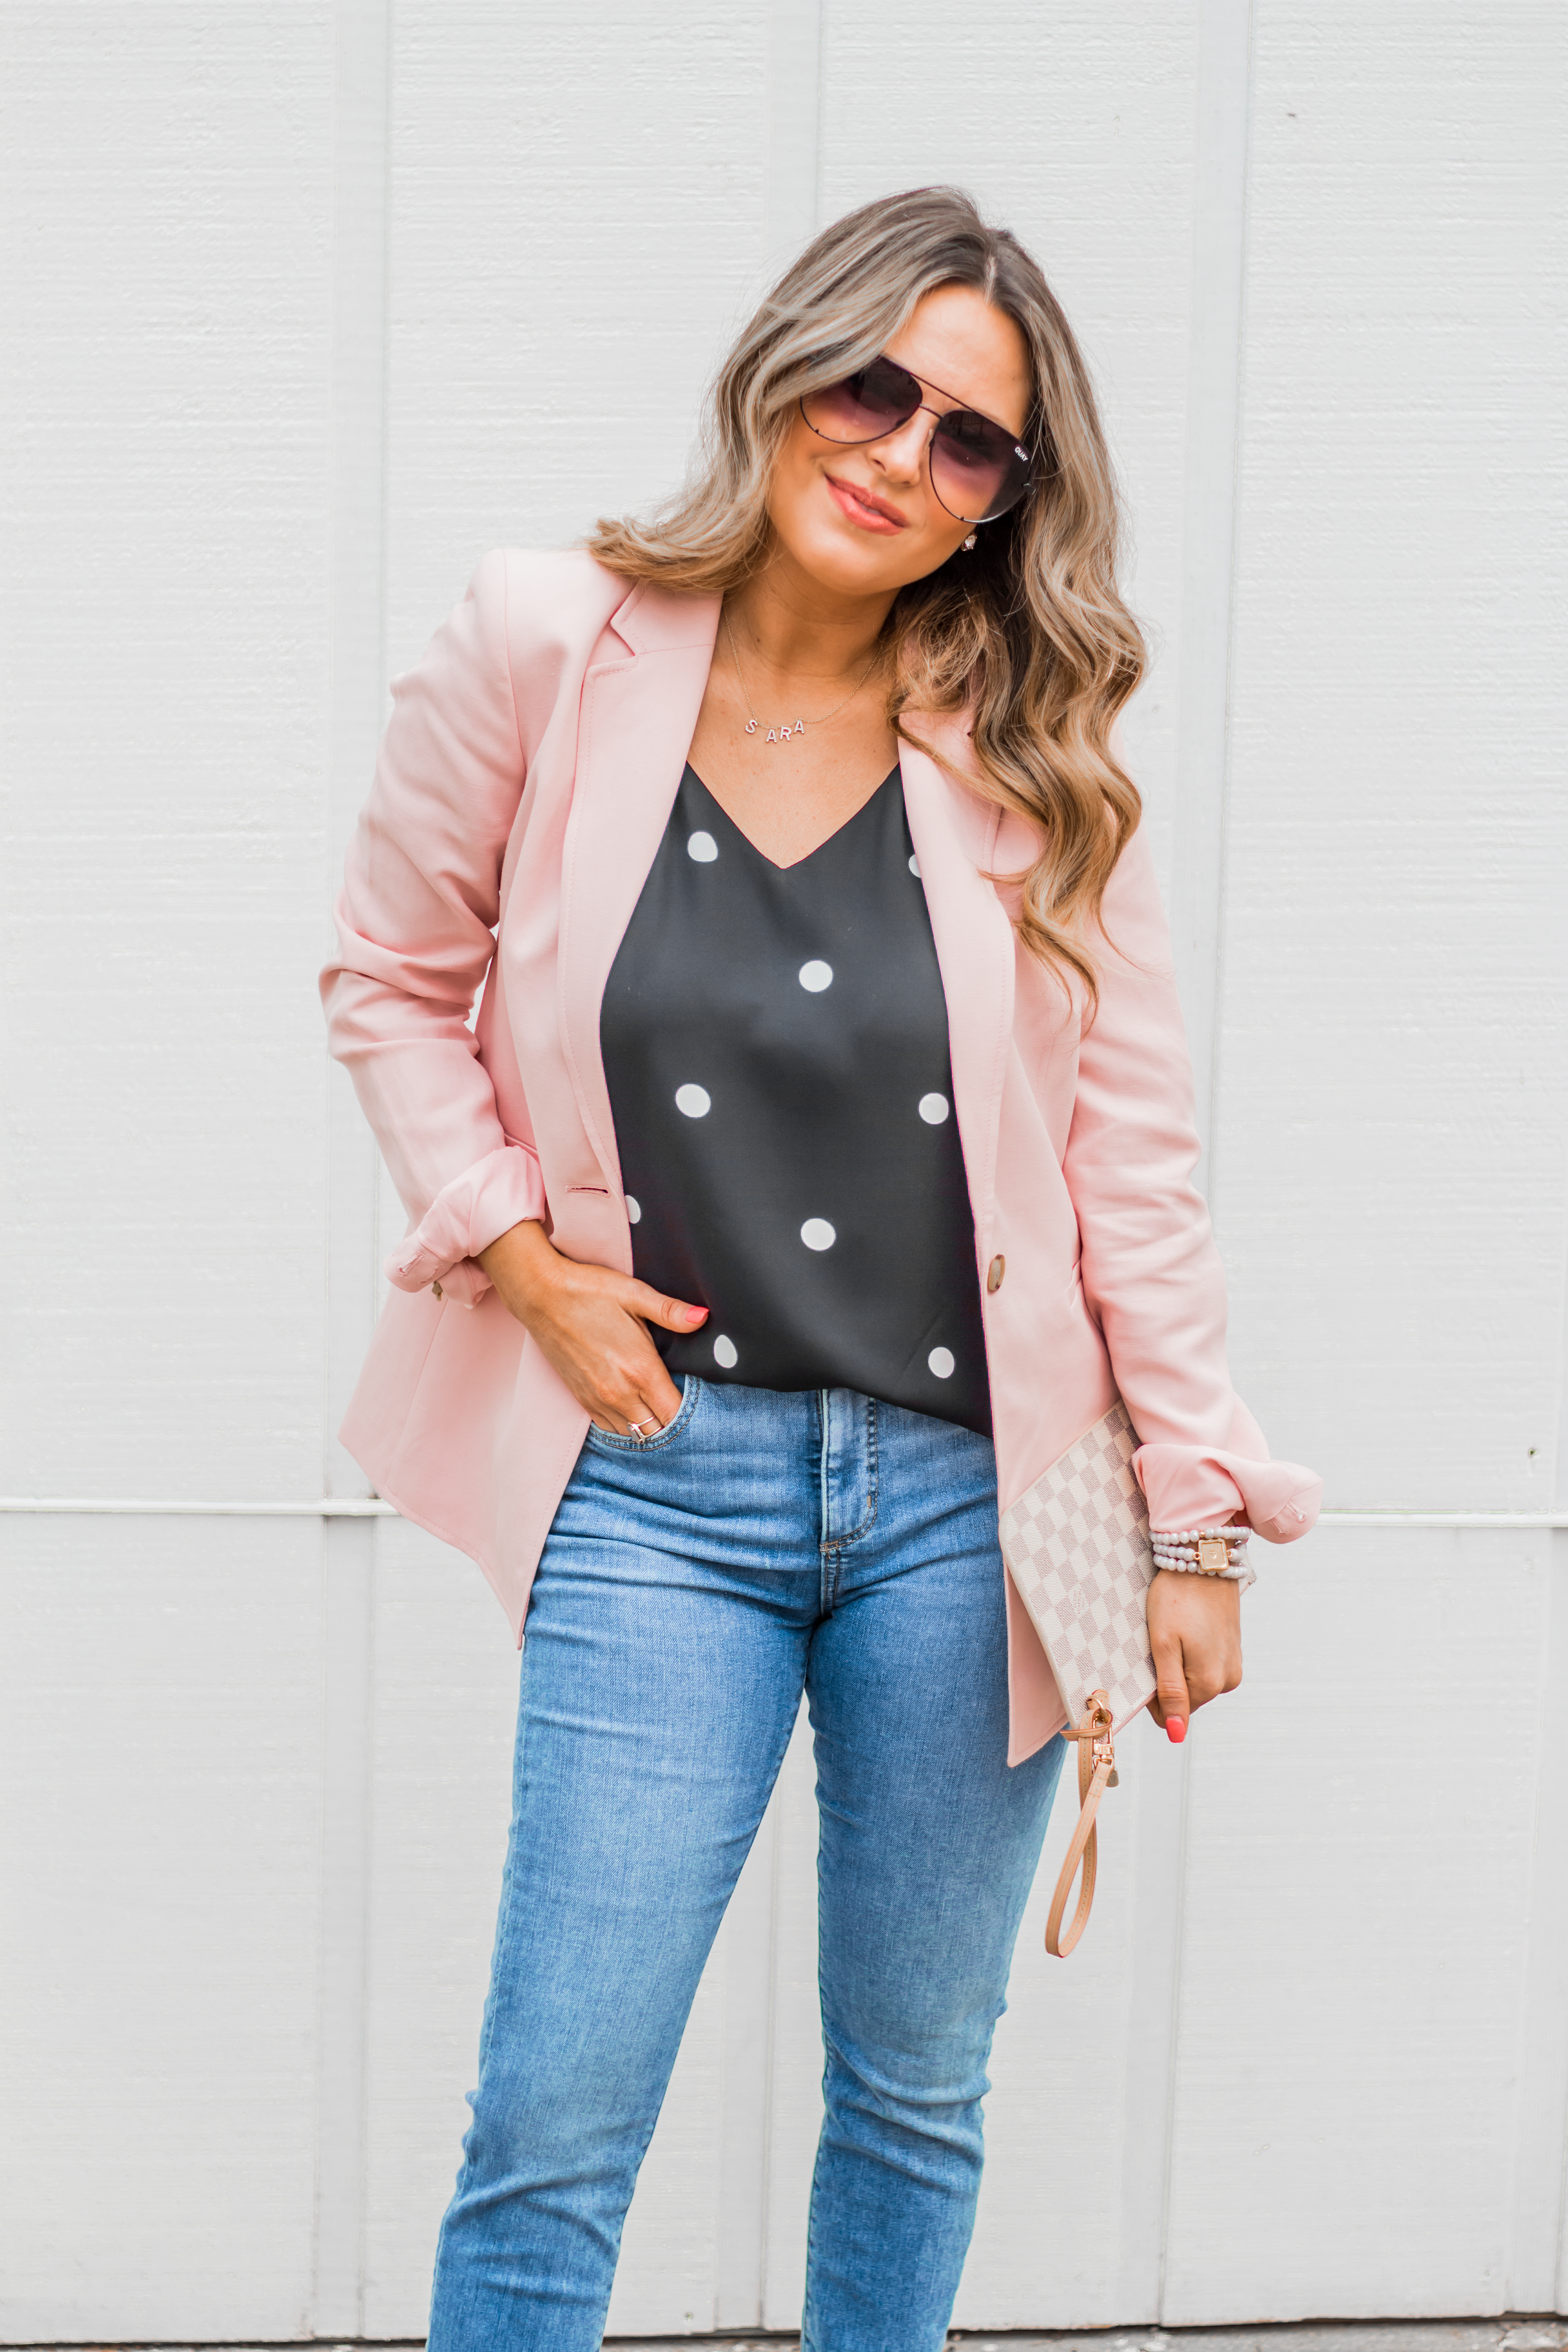 271d3fecca06b I'm so happy that tomorrow is the first day of Spring, so to celebrate, I'm  back at it with Village Pointe to bring you girls a dose of Spring fashion!